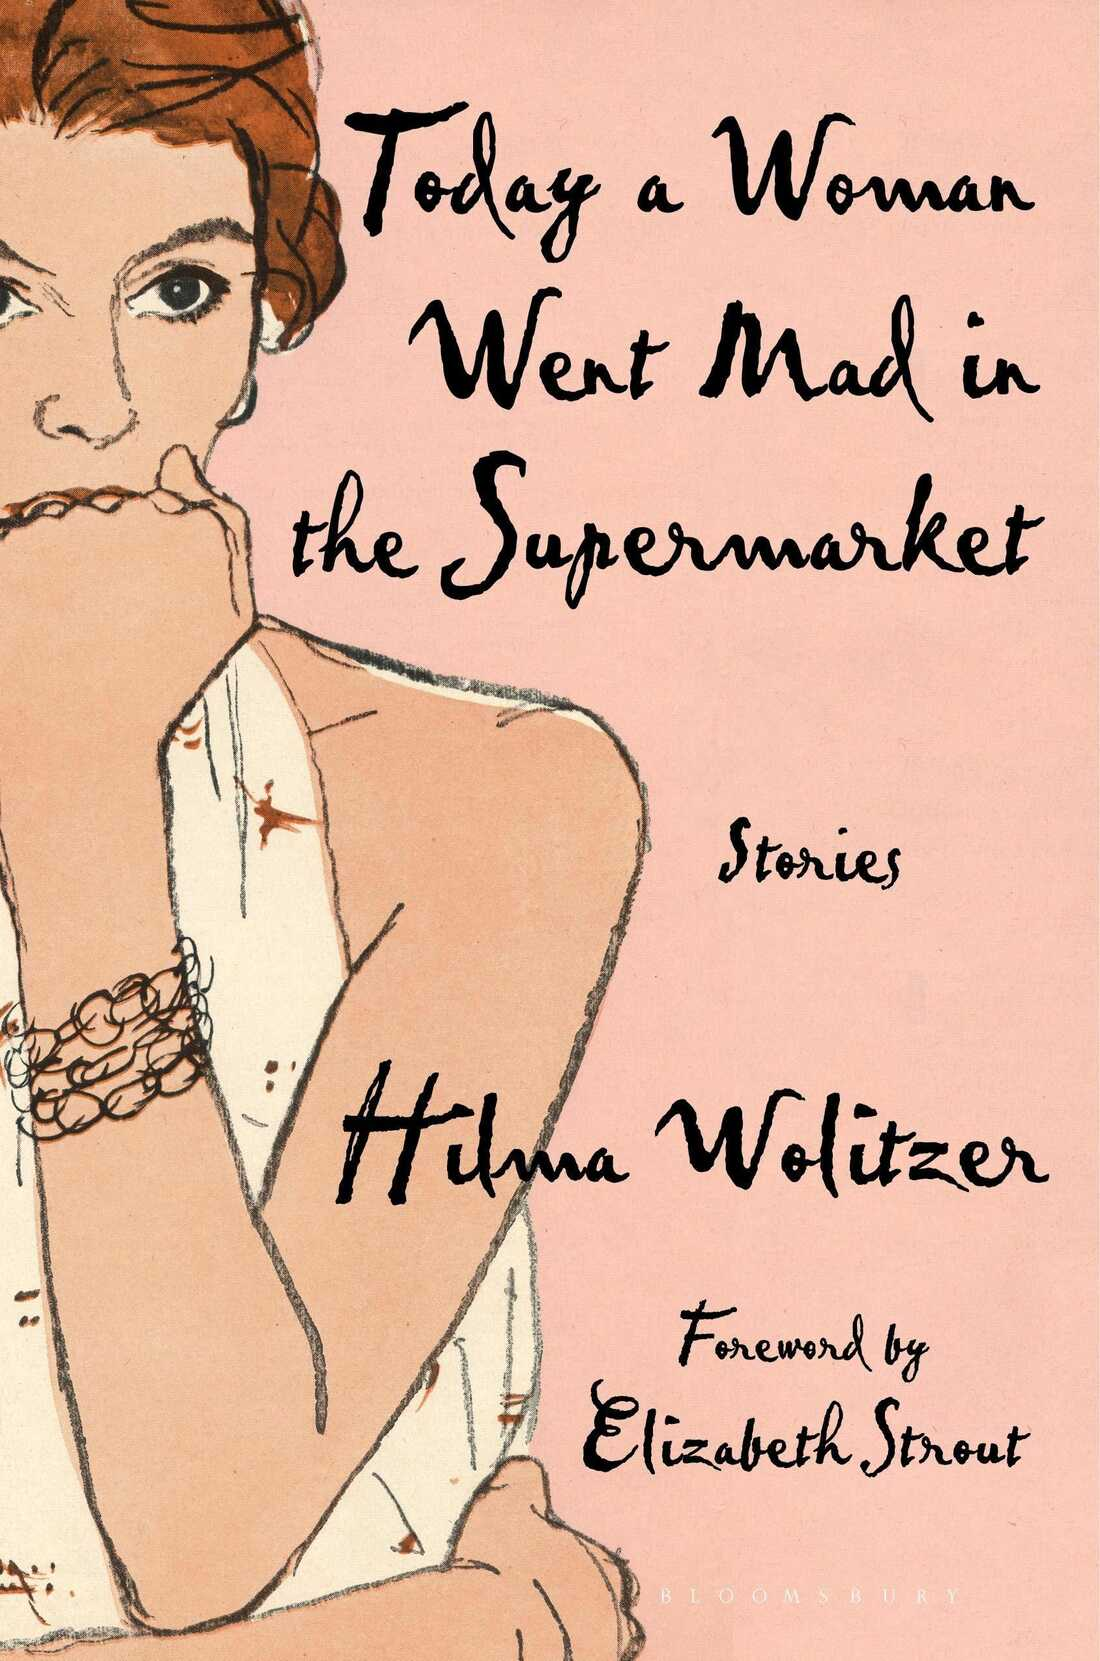 Today a Woman Went Mad in the Supermarket, by Hilma Wolitzer